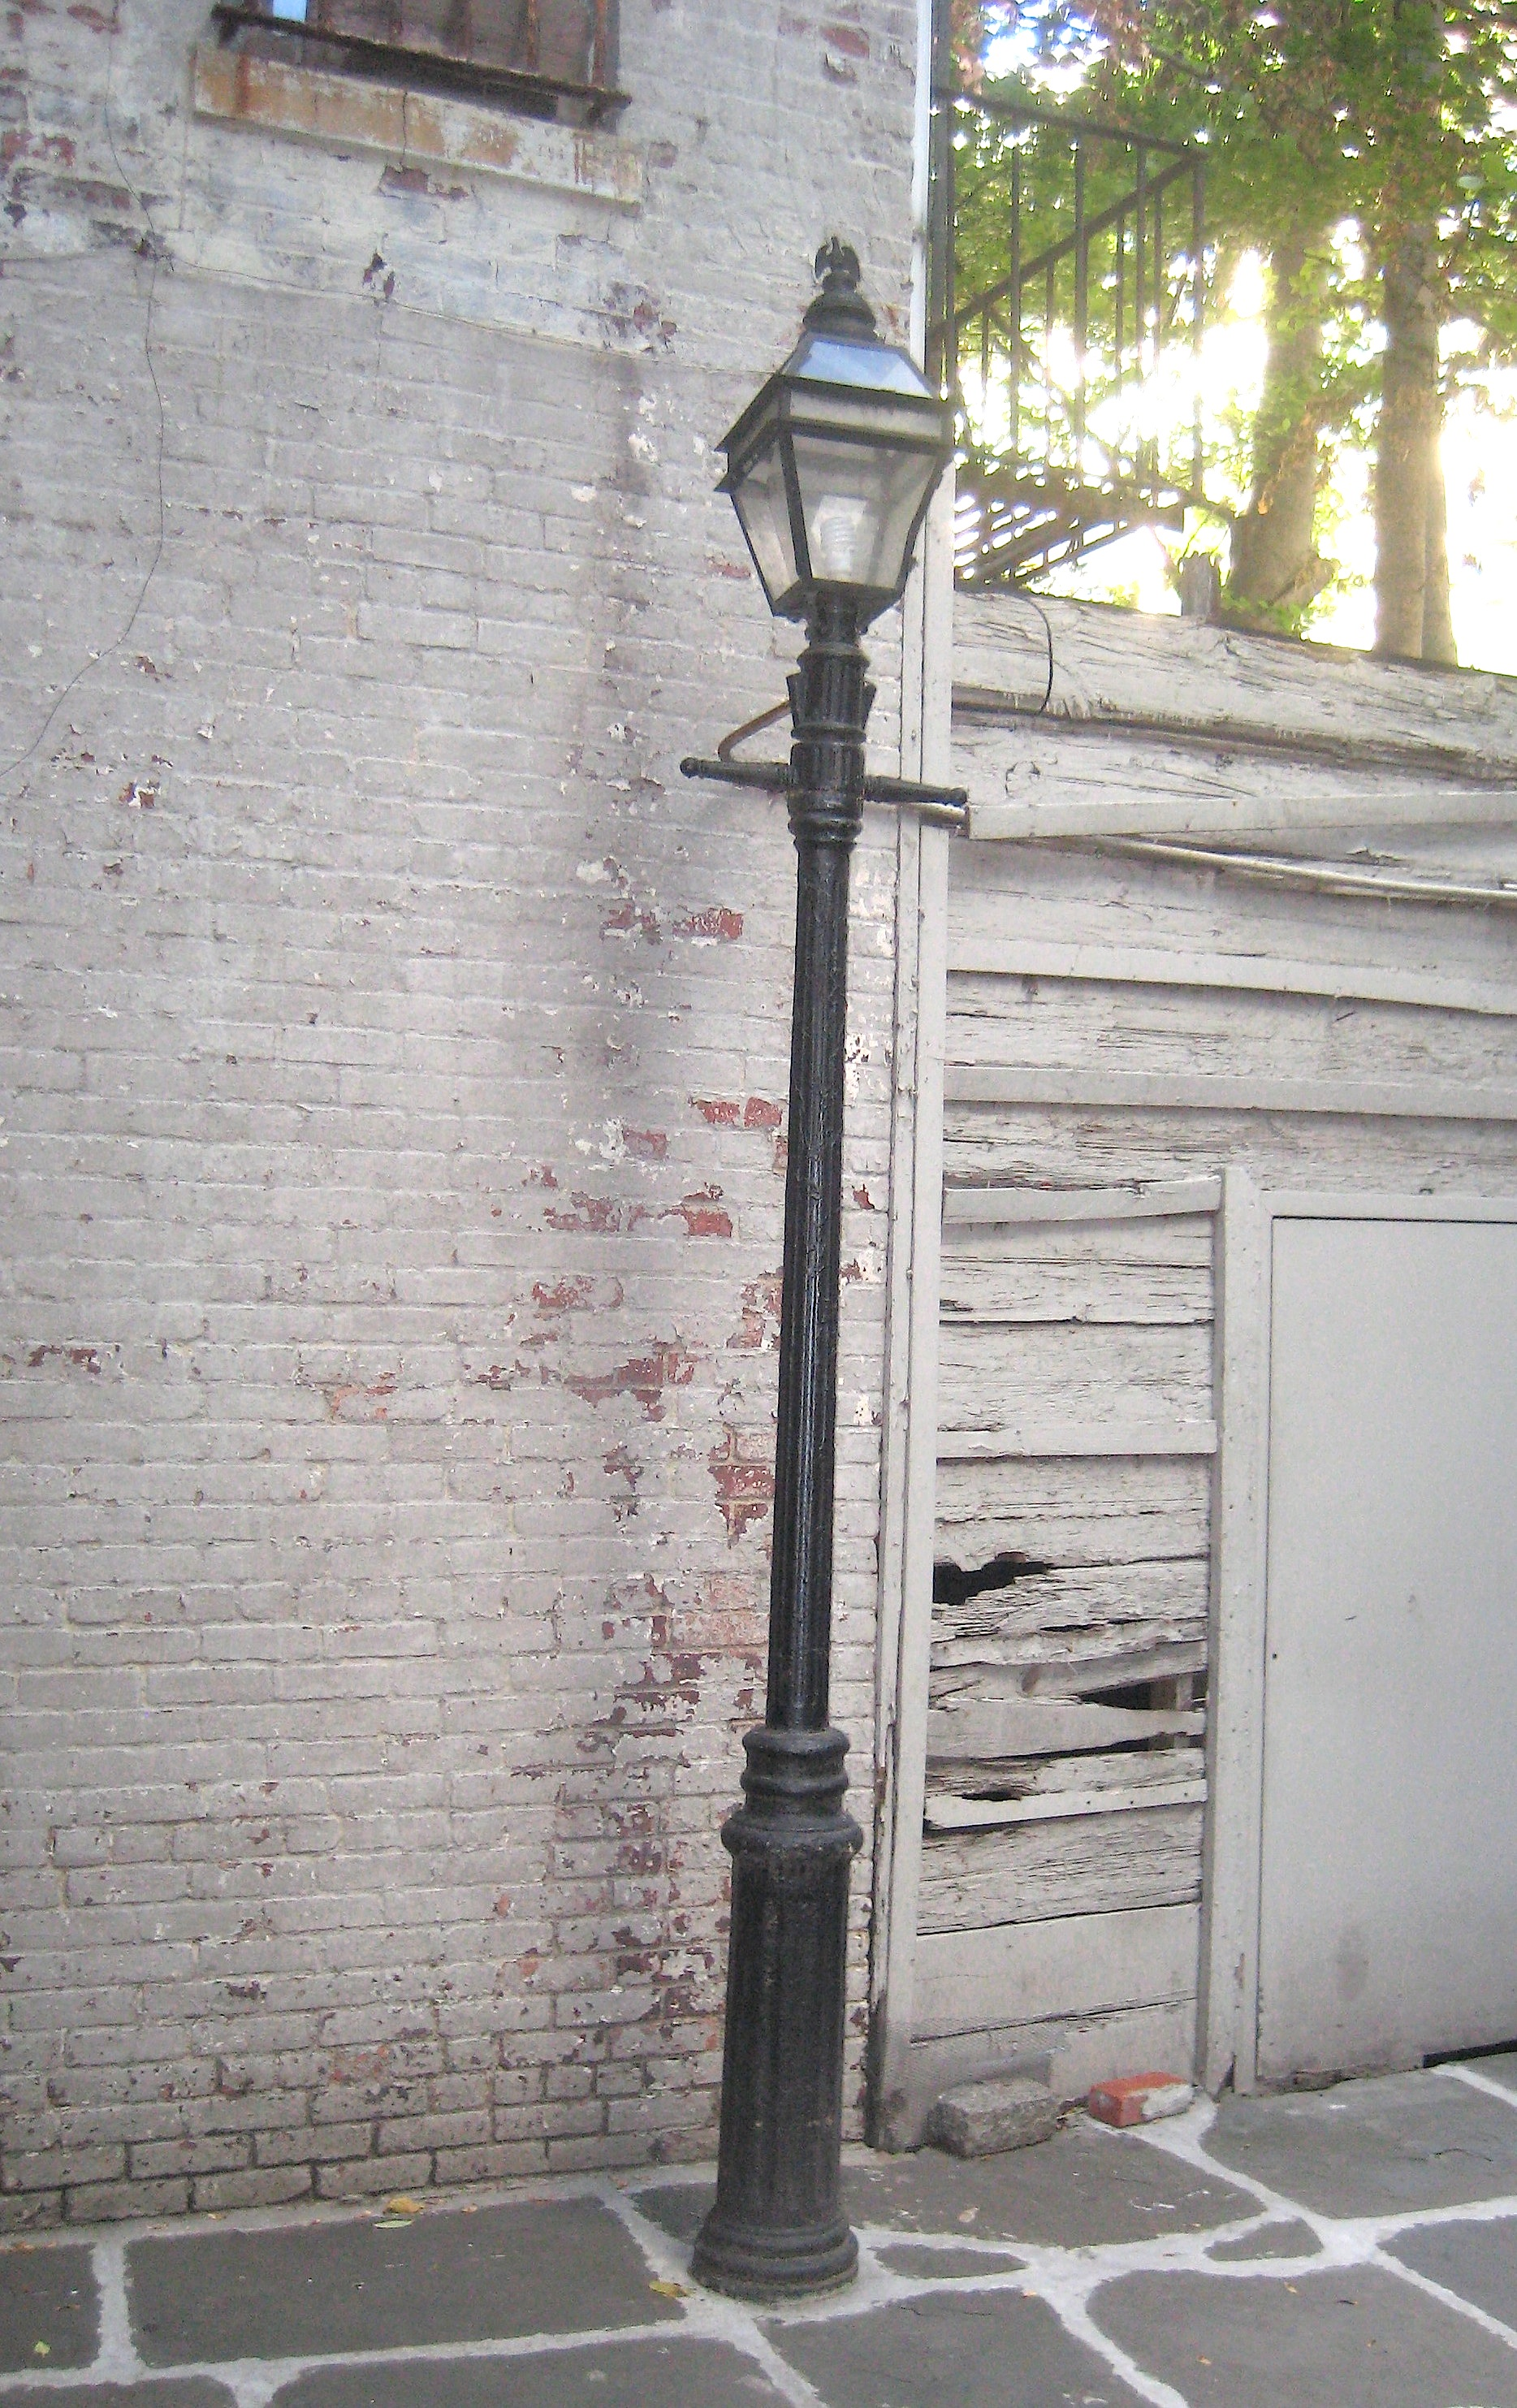 New York's Last Gas Lamp In A West Village Alley